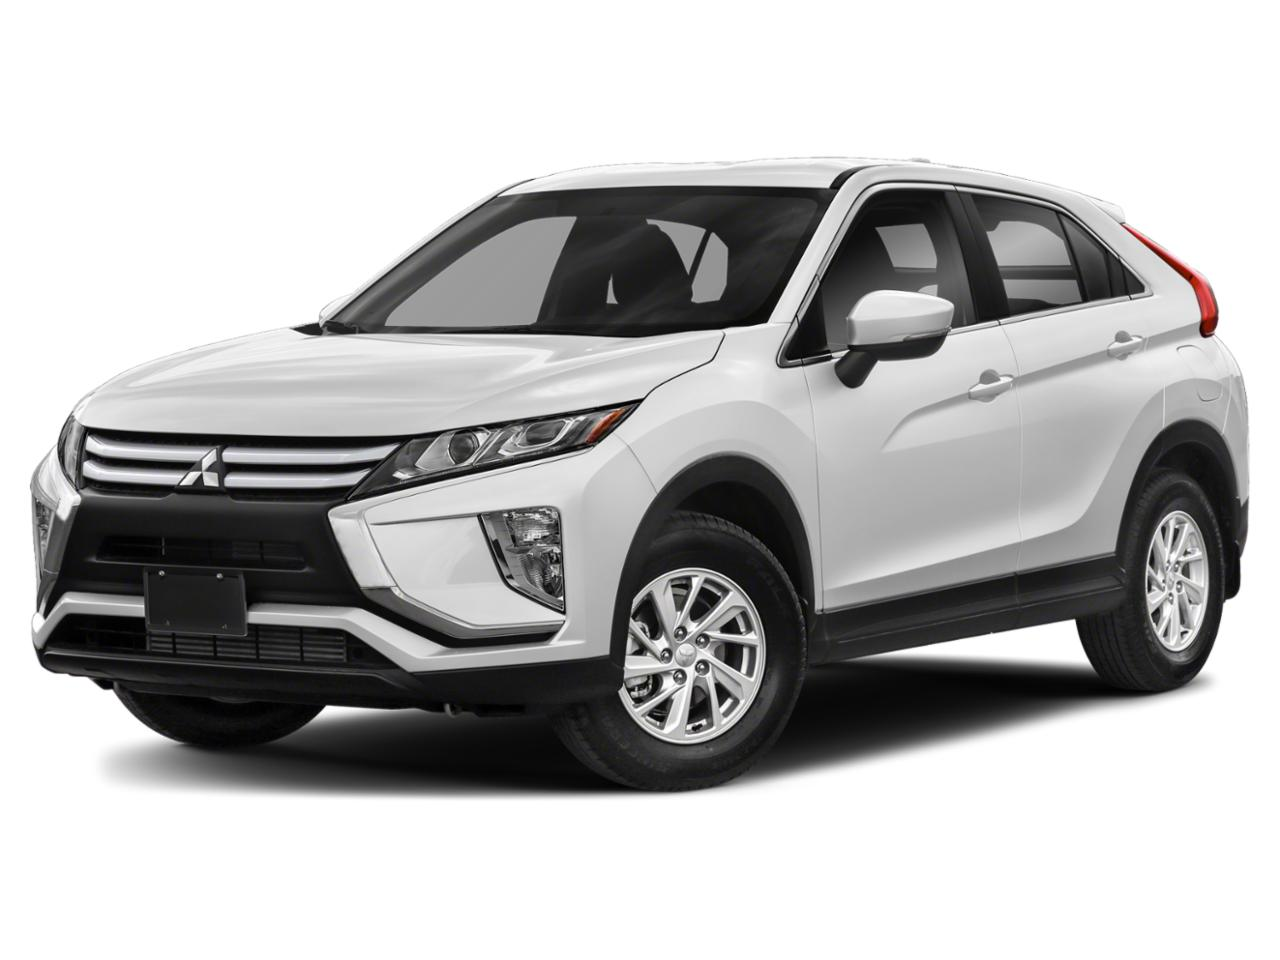 2020 Mitsubishi Eclipse Cross Vehicle Photo in Plainfield, IL 60586